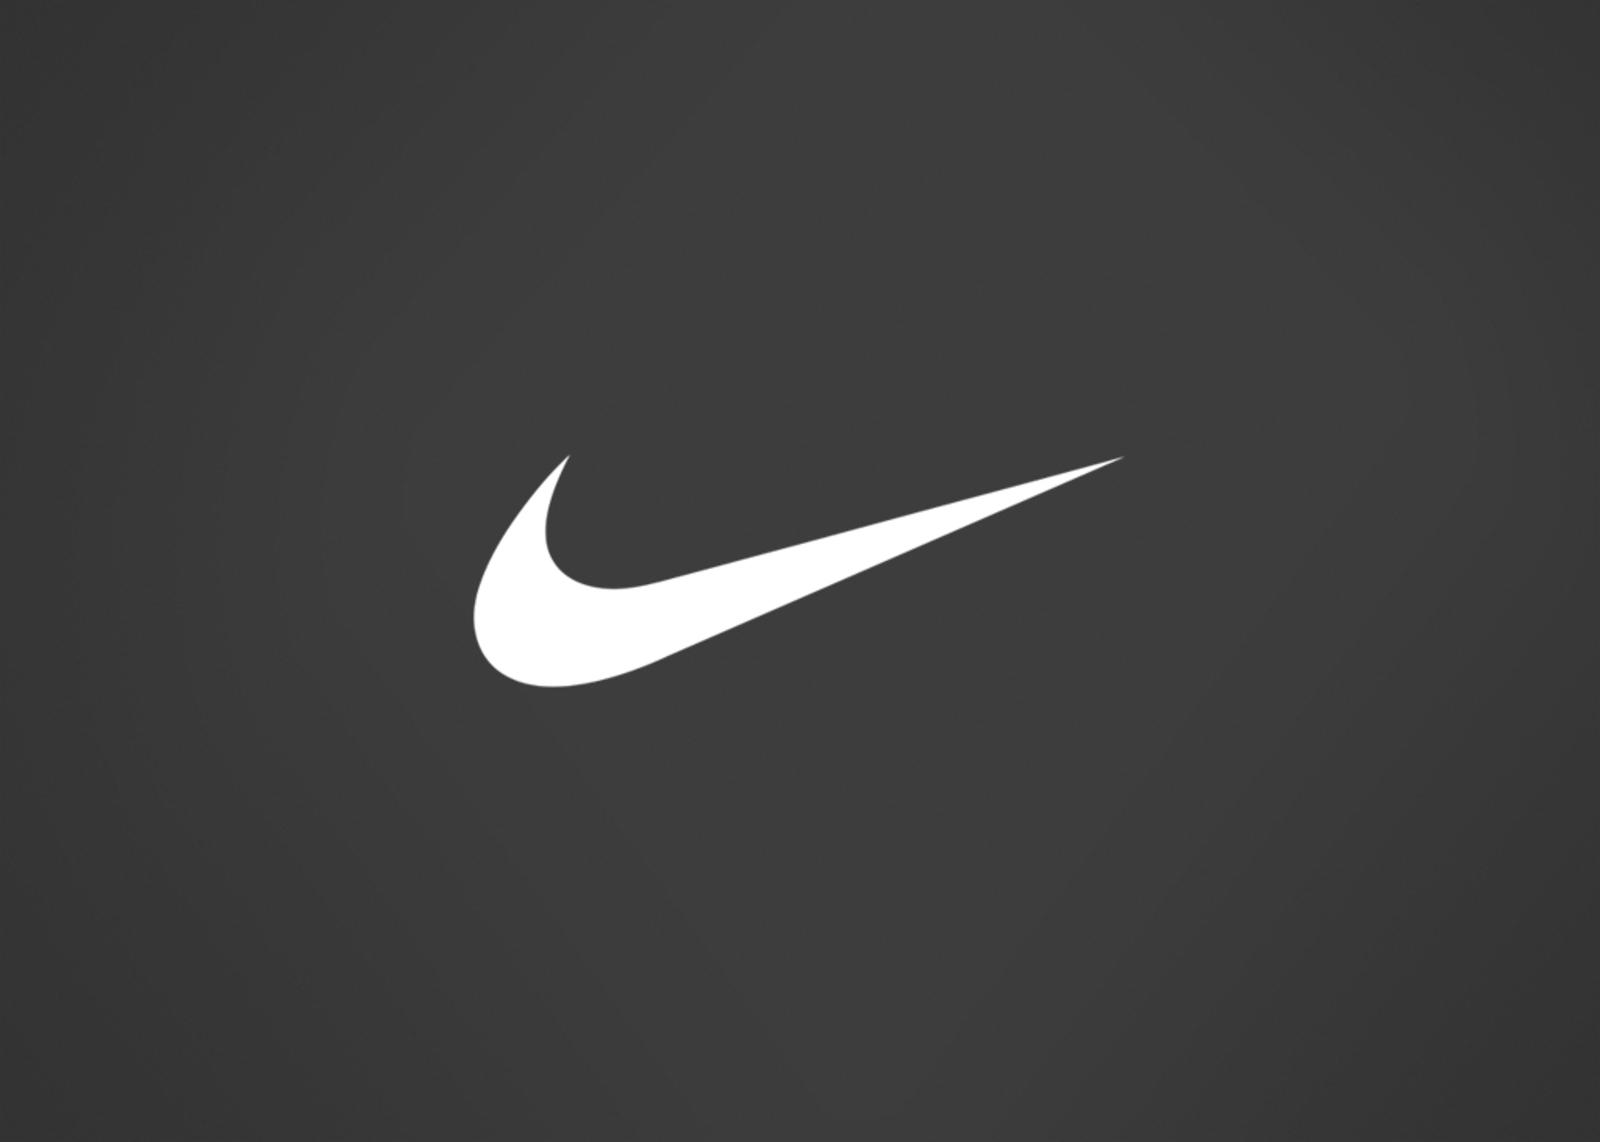 nike official